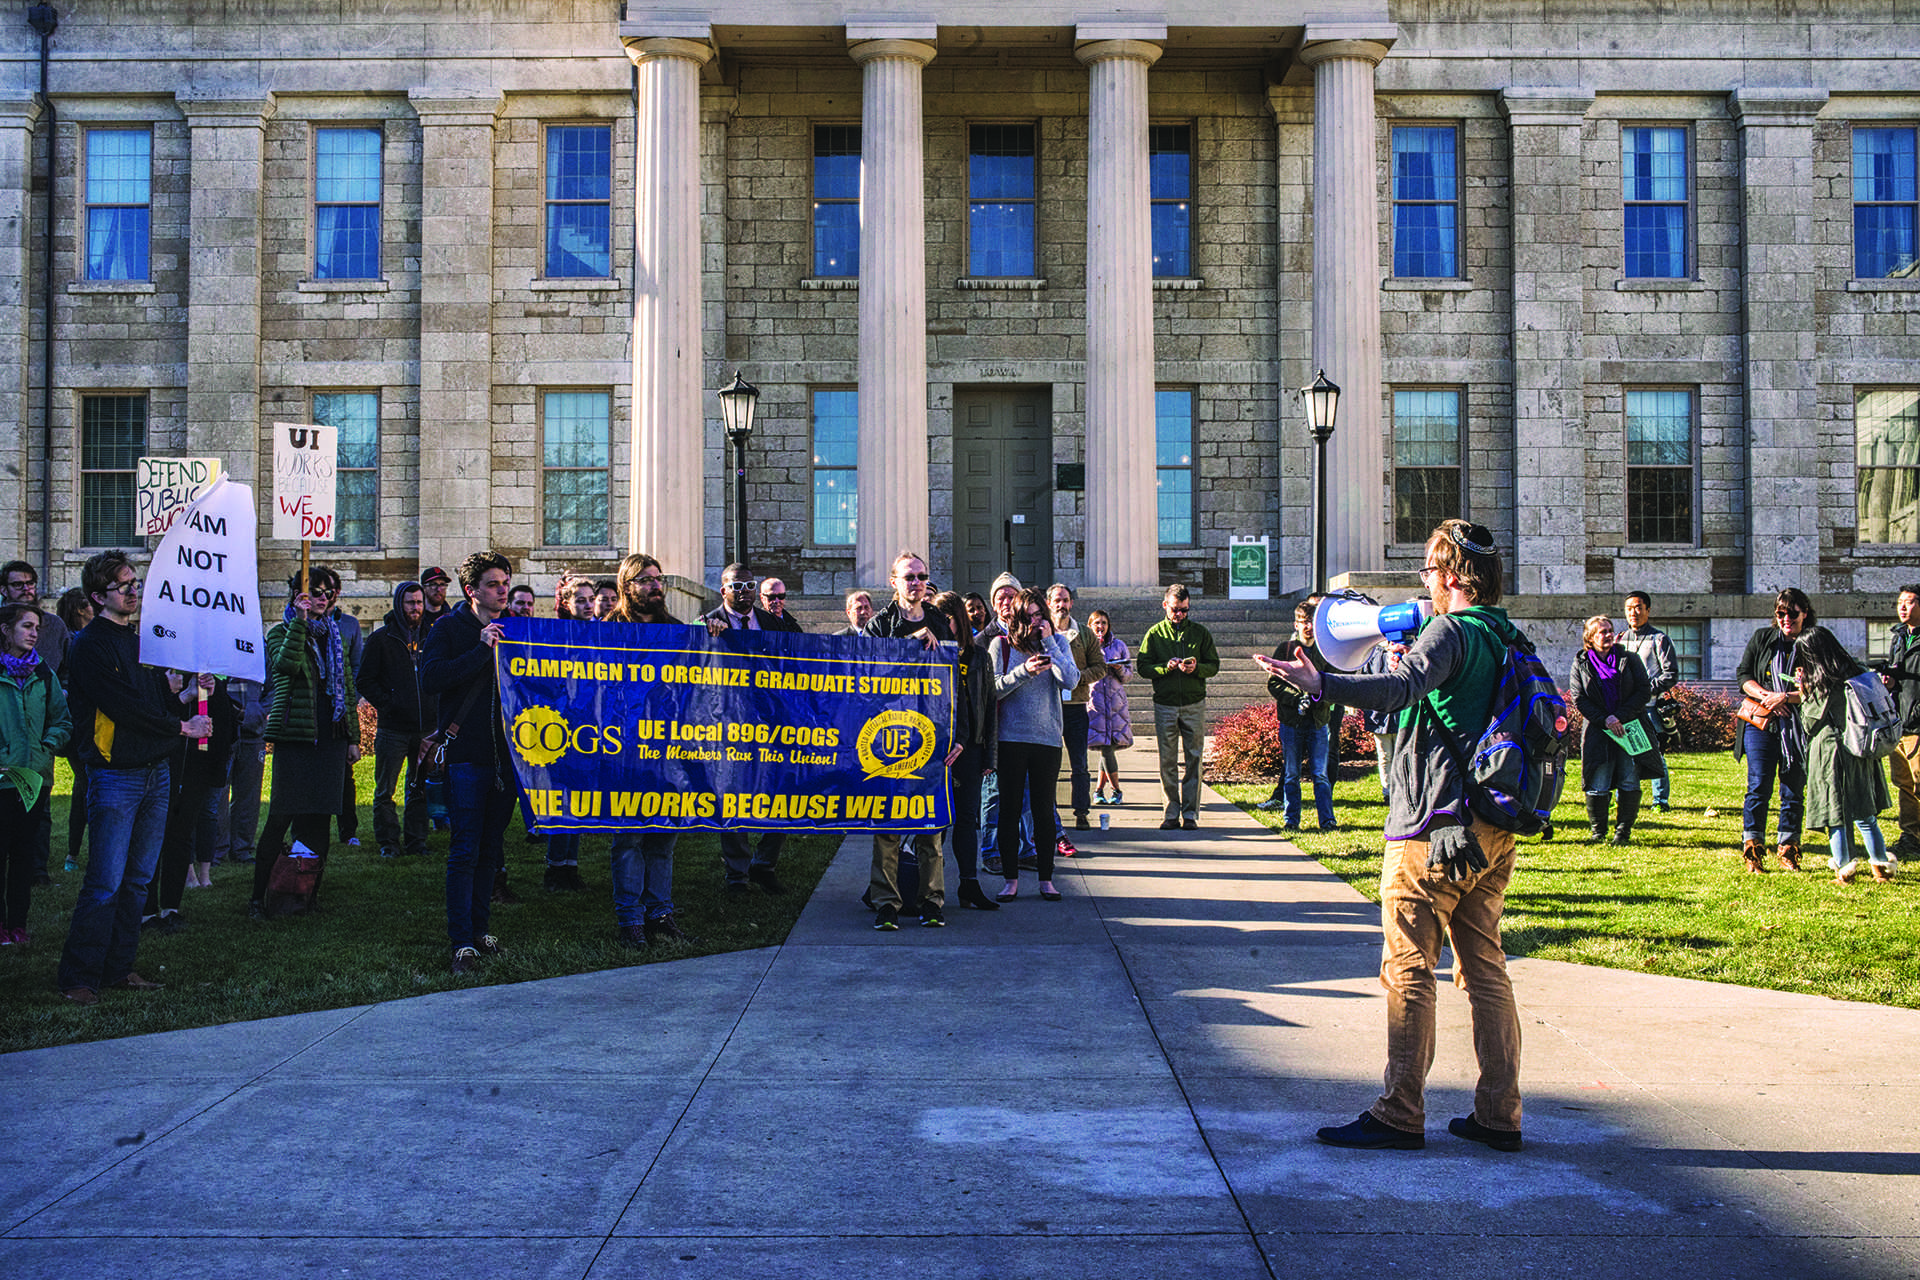 COGS financial officer Landon Elkind speaks to the crowd at a protest on the Pentacrest on Wednesday, Nov. 29, 2017. The students protested a current GOP tax proposal that would repeal tax exemption on students' tuition waivers, making that income taxable. That provision in the House version of this legislation has been concerning for graduate students. (James Year/The Daily Iowan)